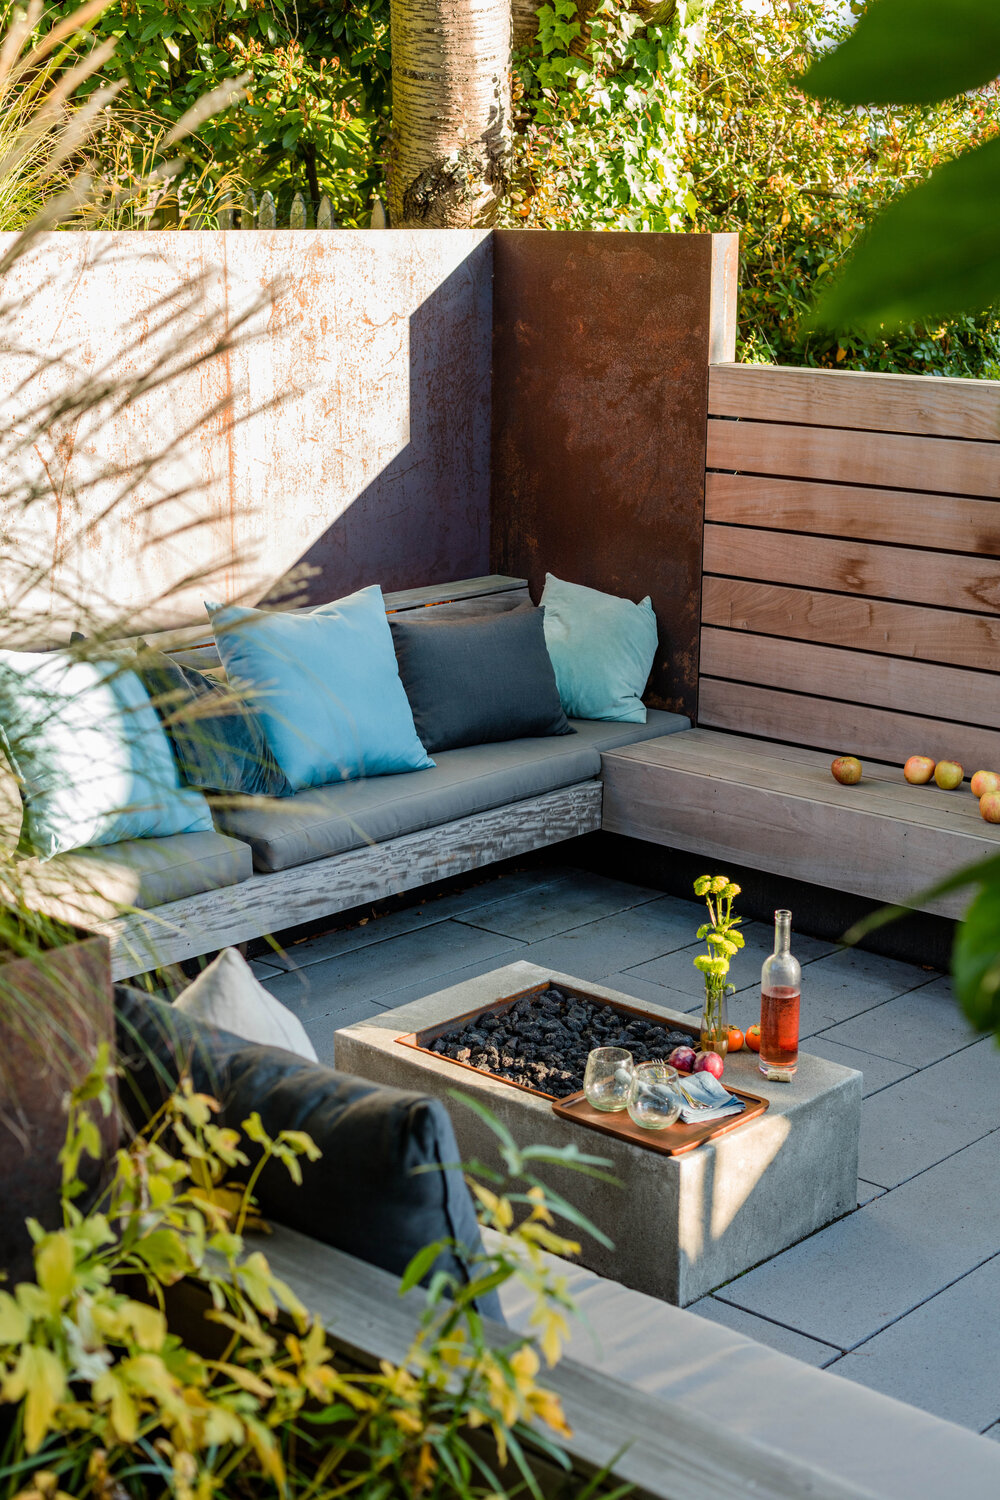 Sunken-patio-and-fireplace-create-a-lovely-outdoor-hangout-that-can-be-used-to-host-guests-and-friends-79101